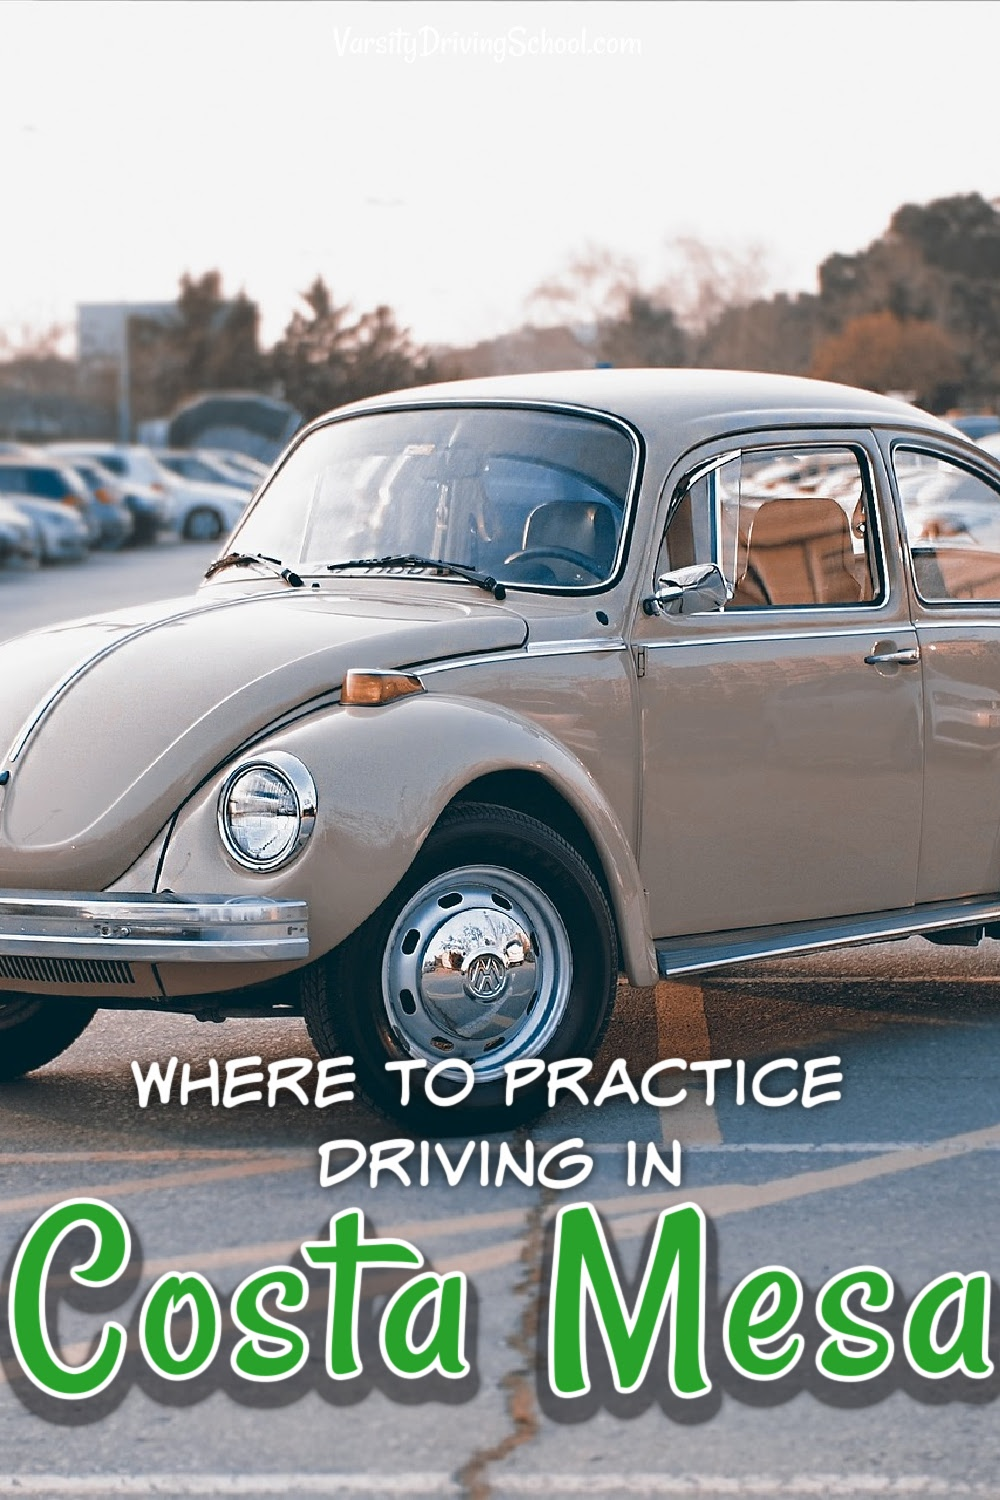 Costa mesa students must know where to practice driving in Costa Mesa that will give them space to learn safely without endangering others.